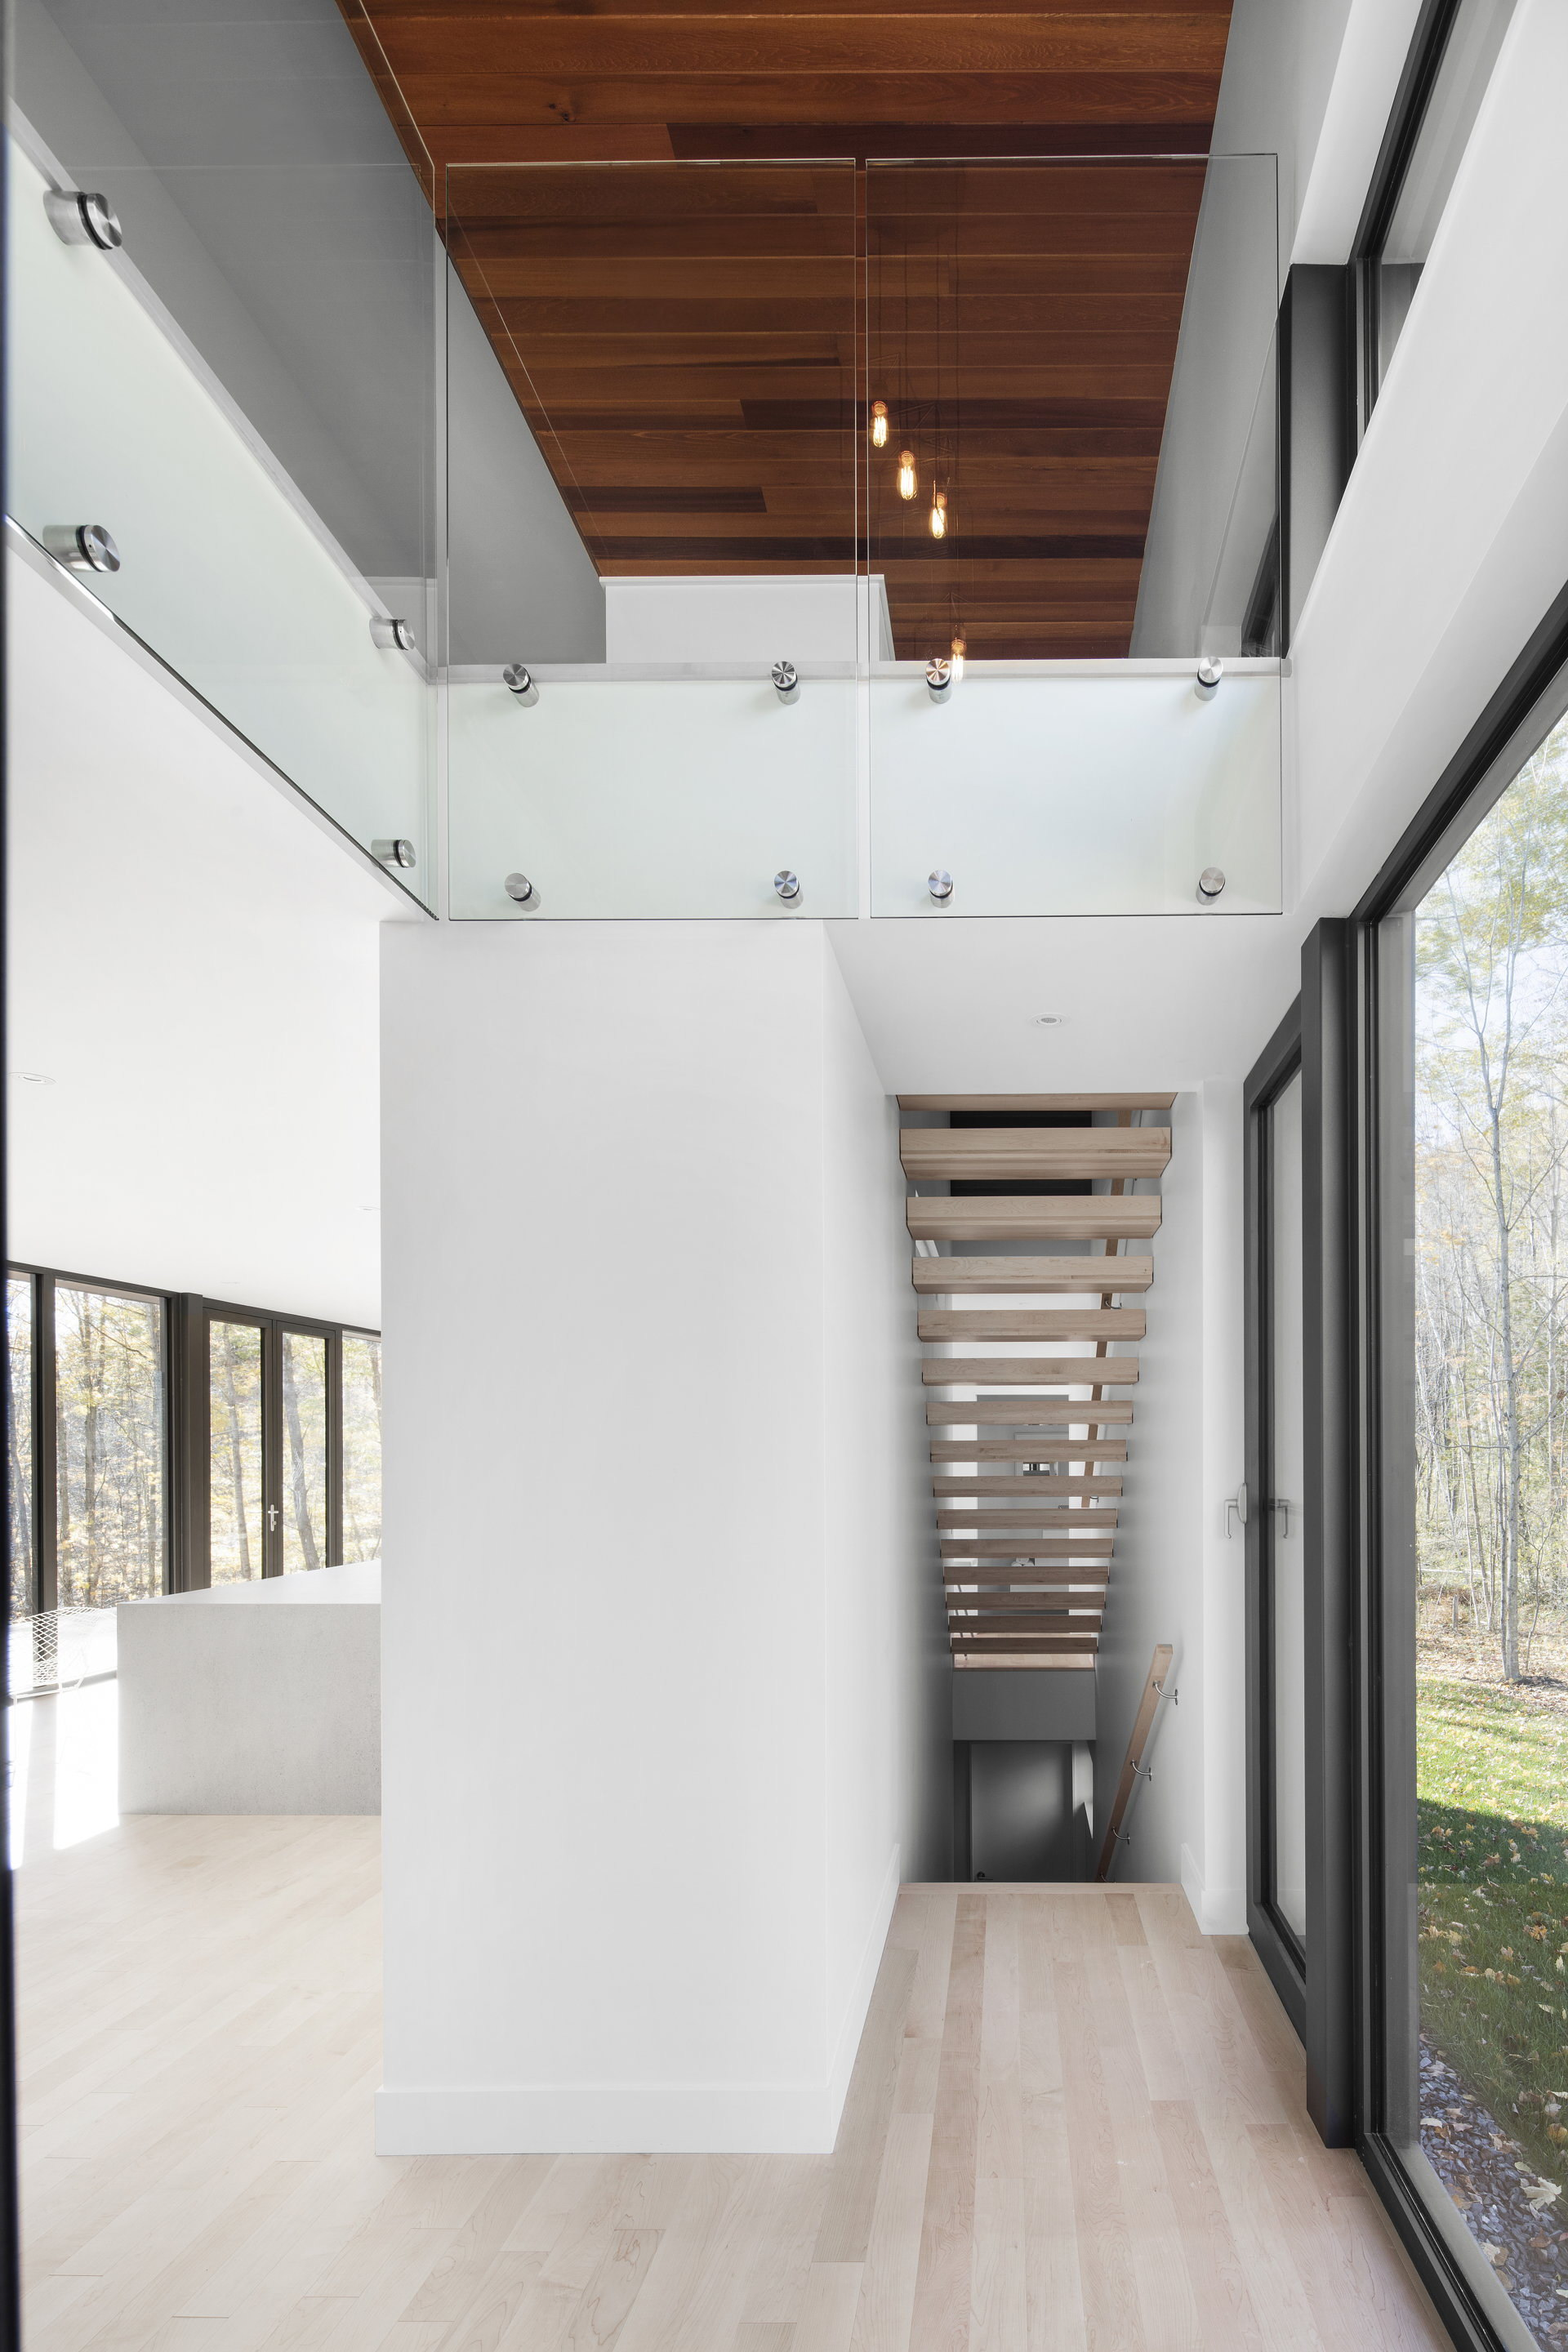 KL House by Bourgeois / Lechasseur architectes